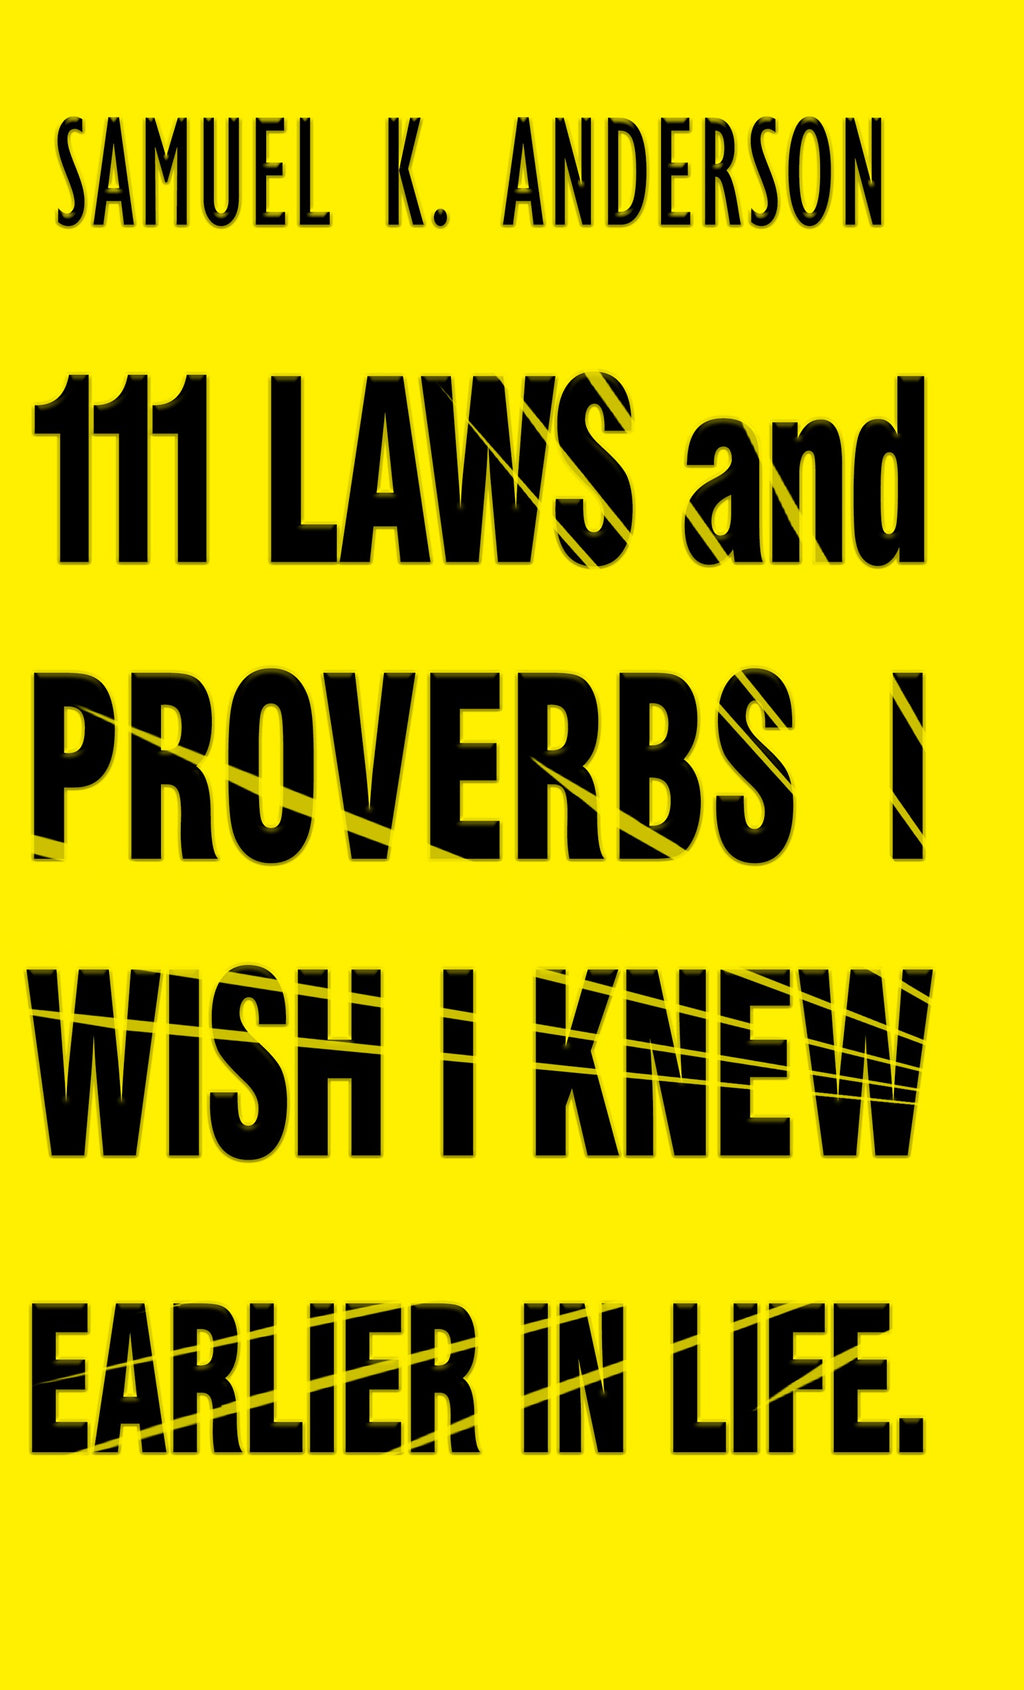 111 LAWS and PROVERBS I WISH I KNEW EARLIER IN LIFE